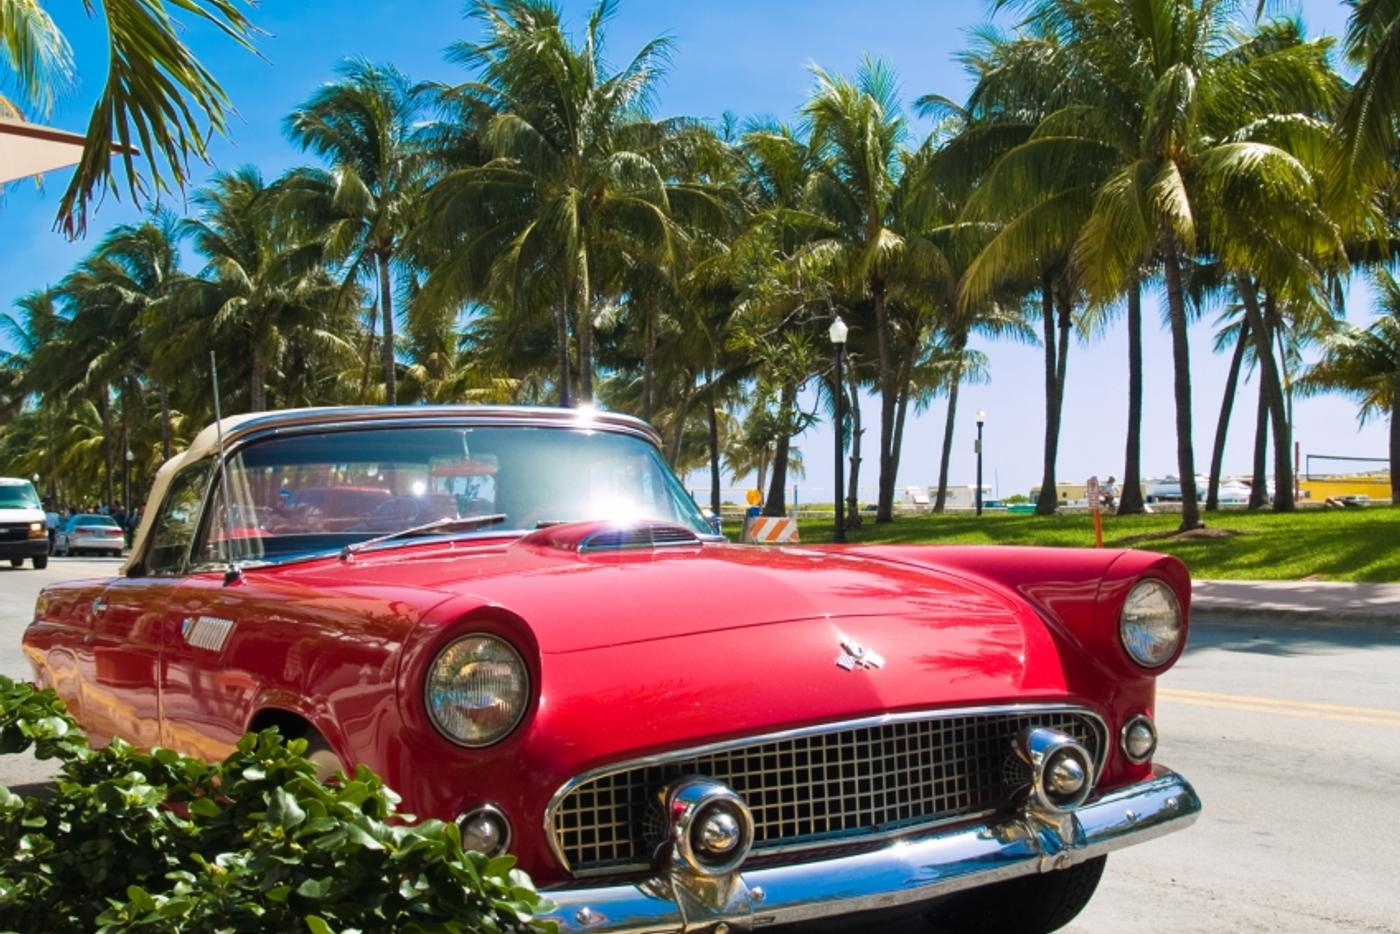 we loved the beaches and bars along the strip in miami on our florida yacht charter vacation